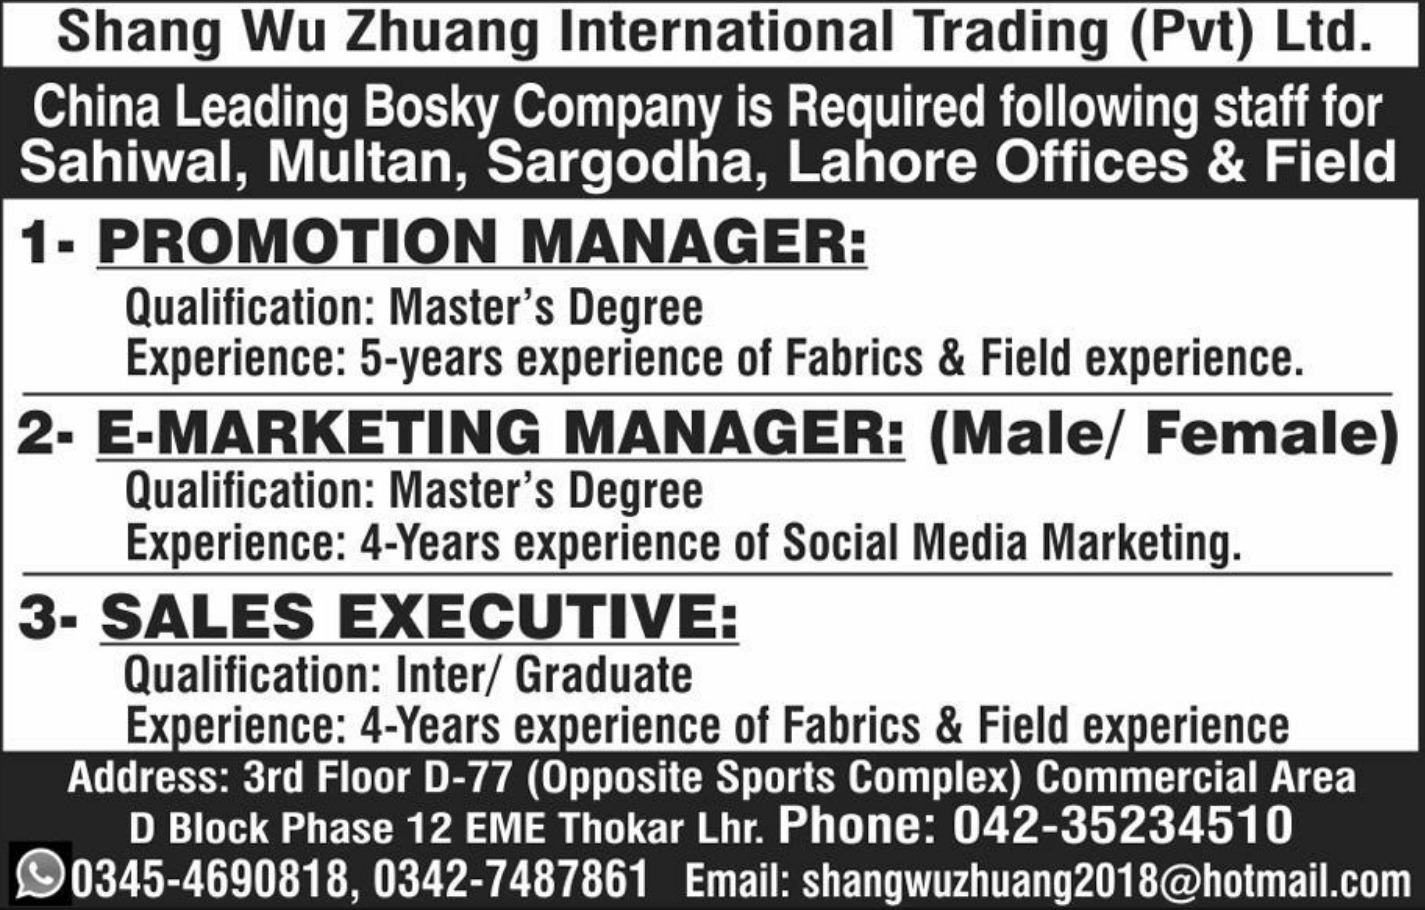 Shang Wu Zhuang International Trading Pvt Ltd Jobs 2019